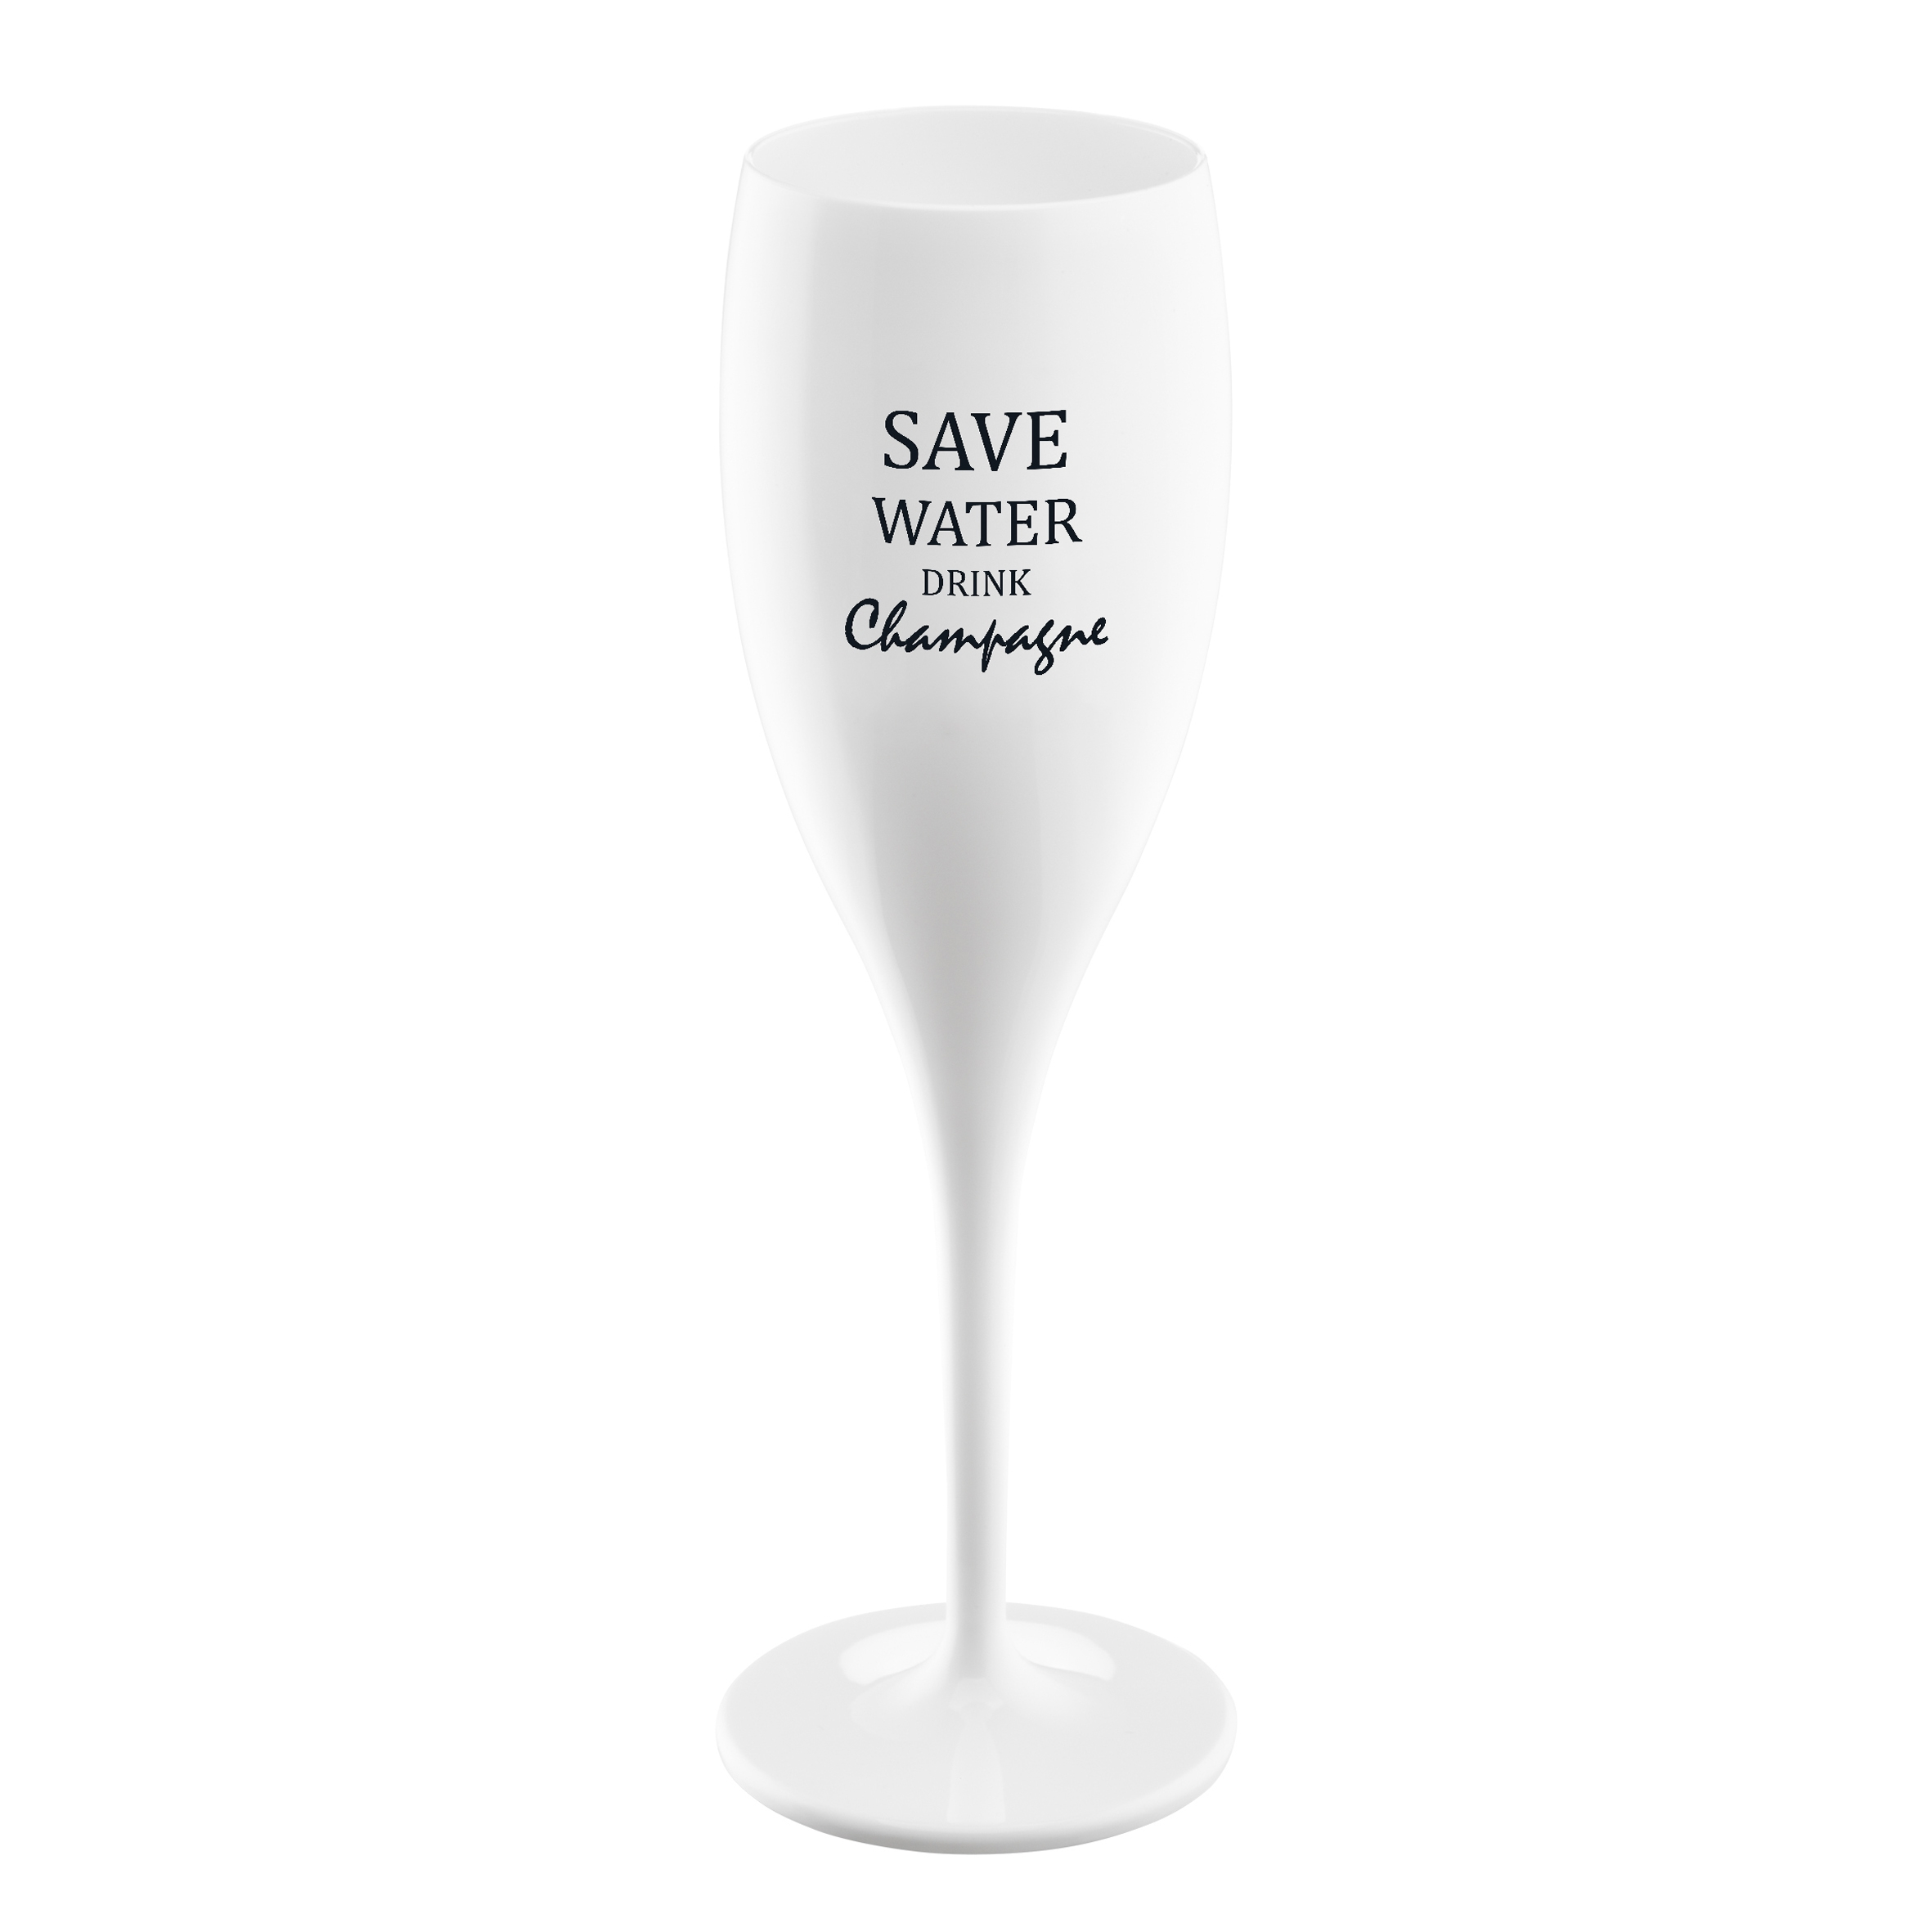 Pahar pentru sampanie Unbreakable Superglas Alb, Save water drink Champagne, 100 ml somproduct.ro